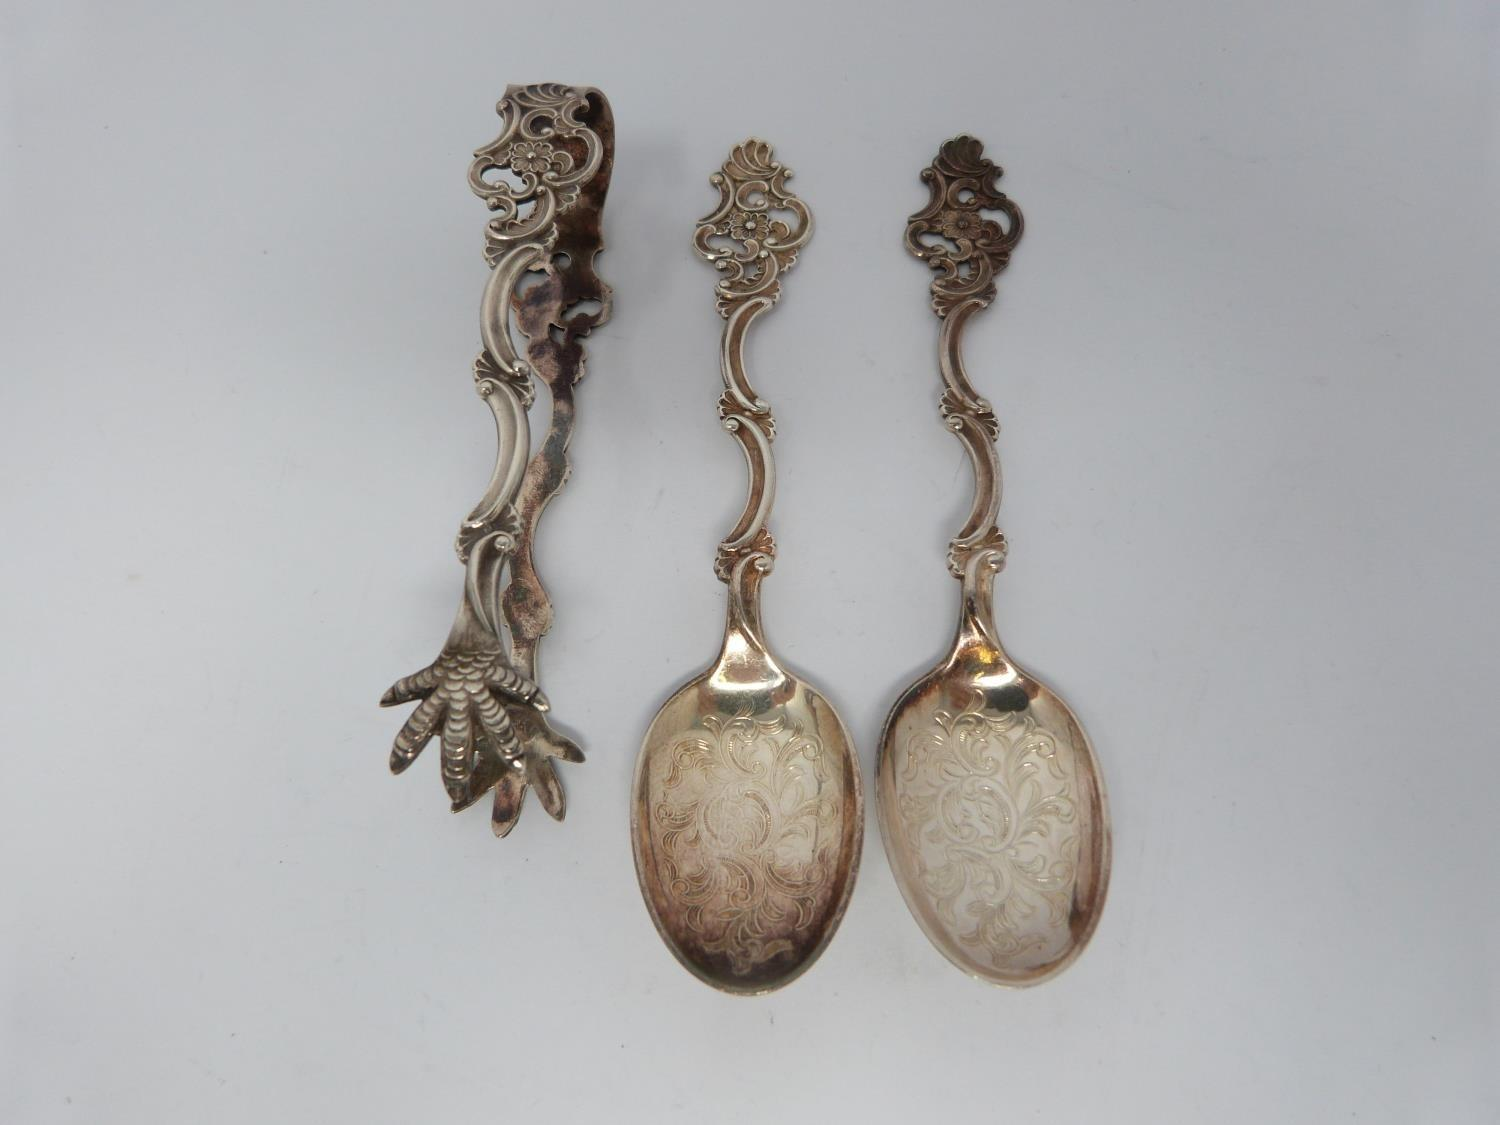 A collection of silver and enamel spoons, Norwegian and English, three spoons in a case, - Image 16 of 17